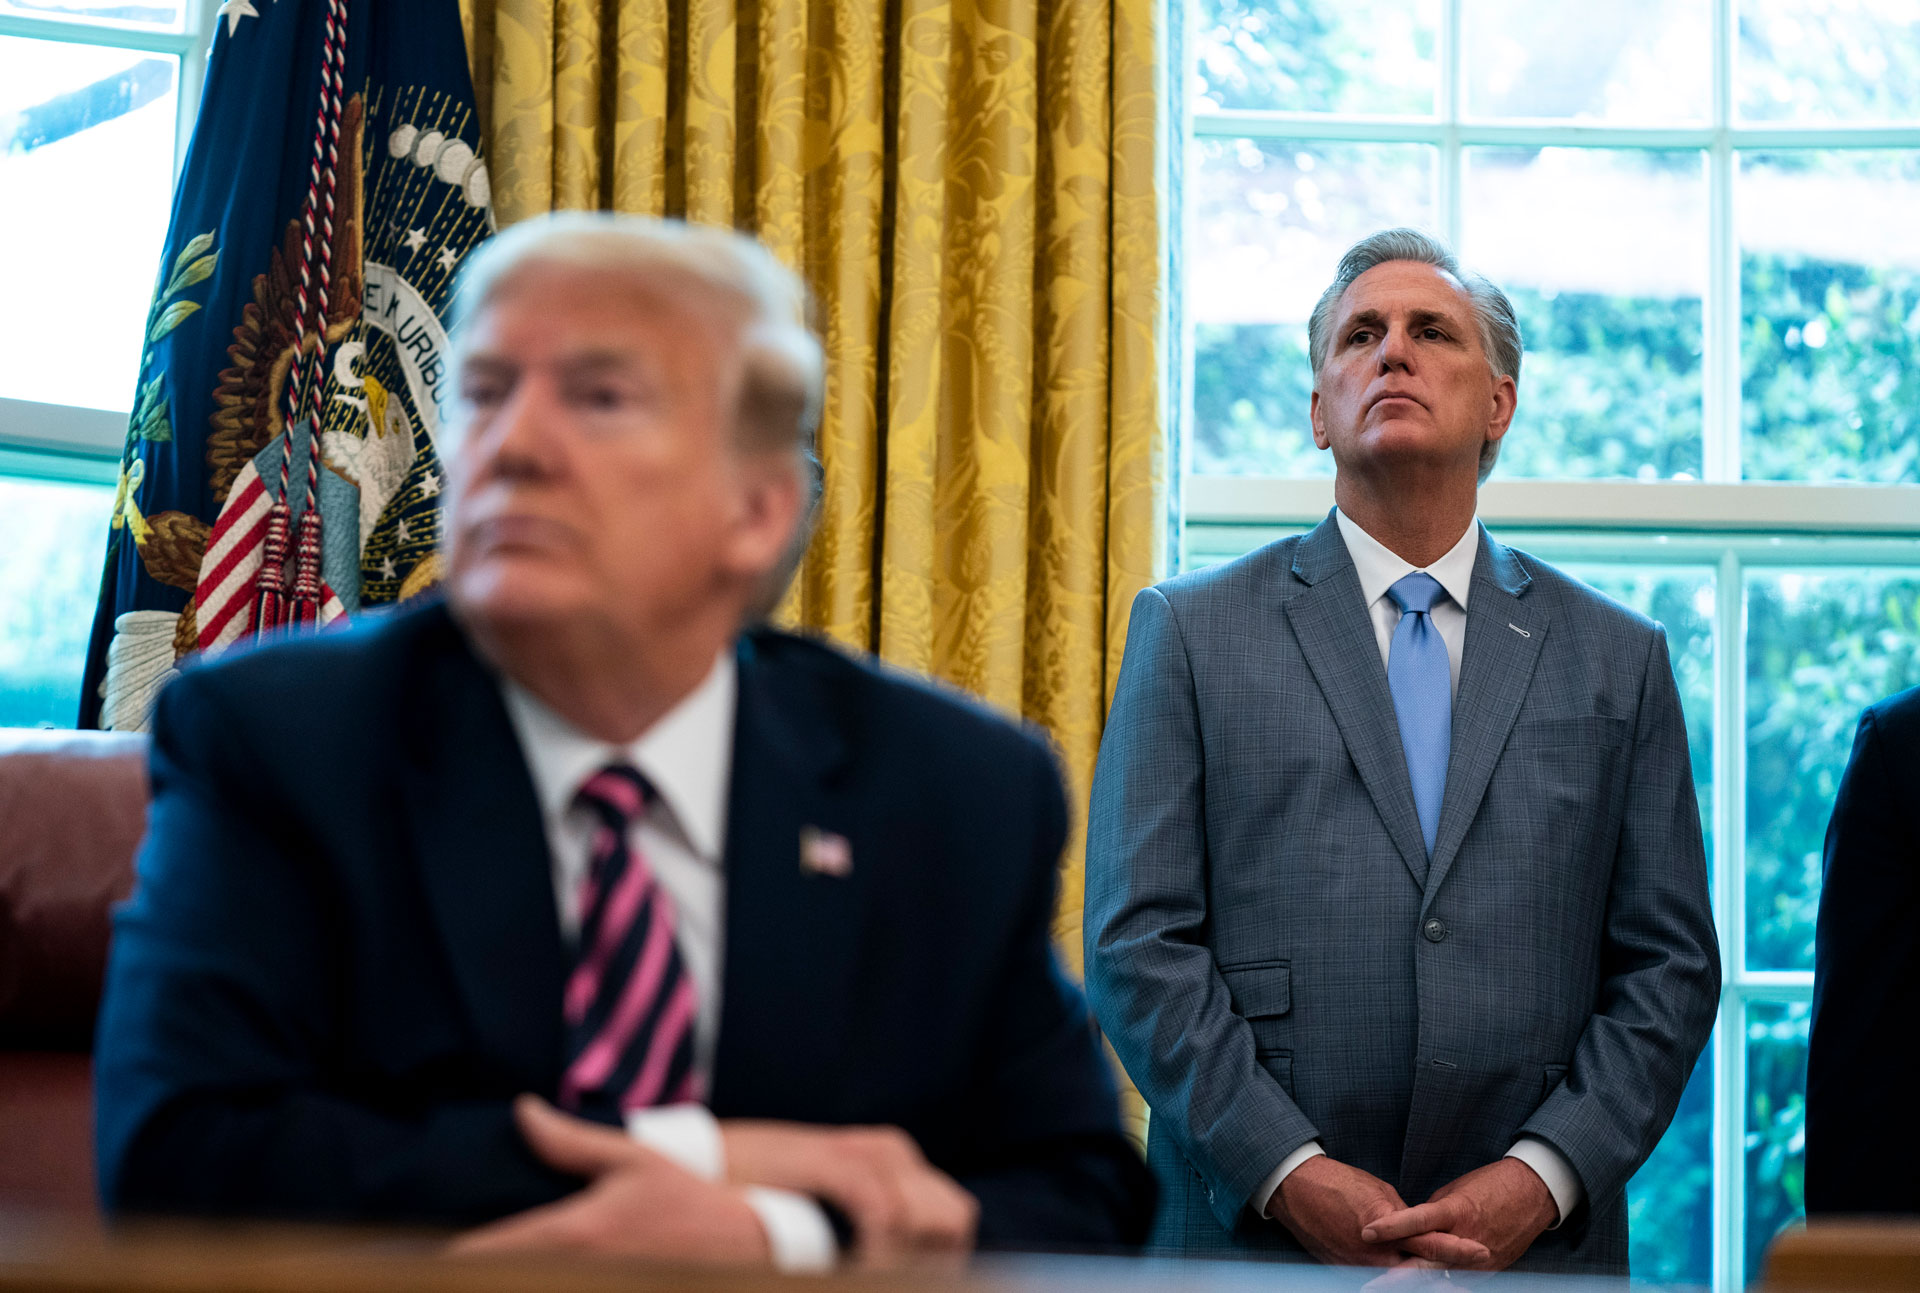 Kevin McCarthy stands behind Trump in the Oval Office